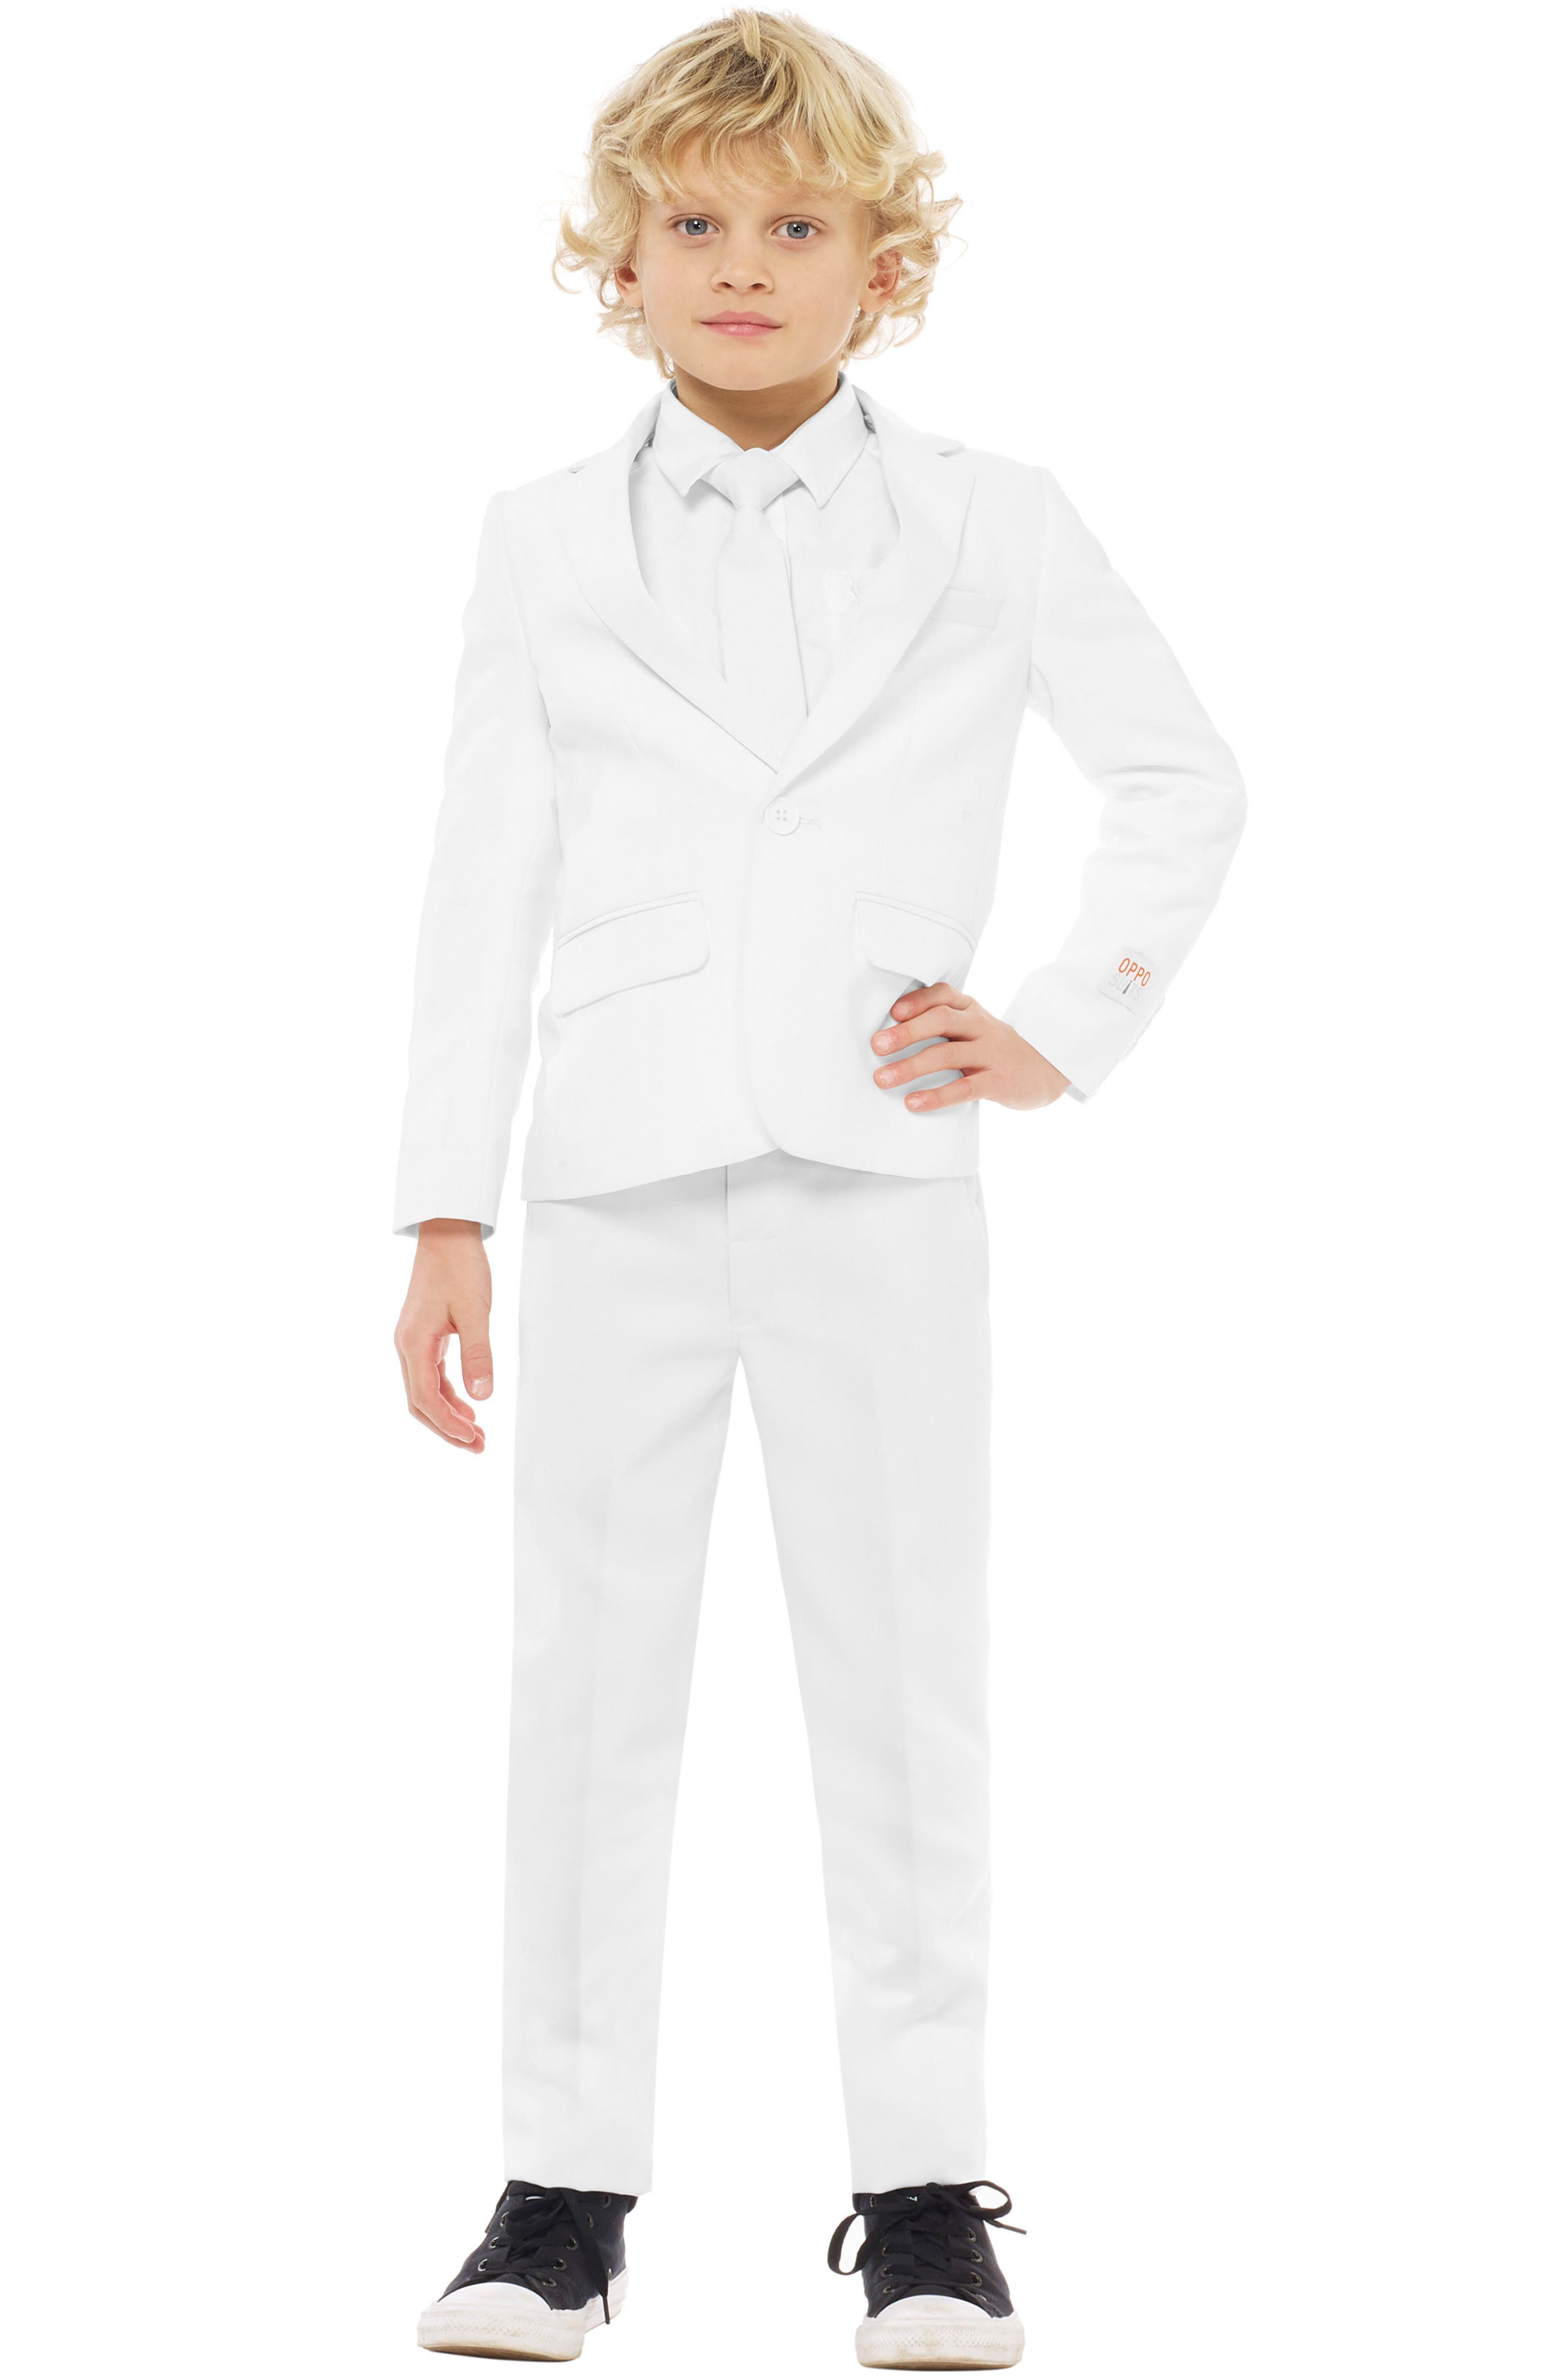 OPPOSUITS,                             Knight Two-Piece Suit with Tie,                             Main thumbnail 1, color,                             WHITE